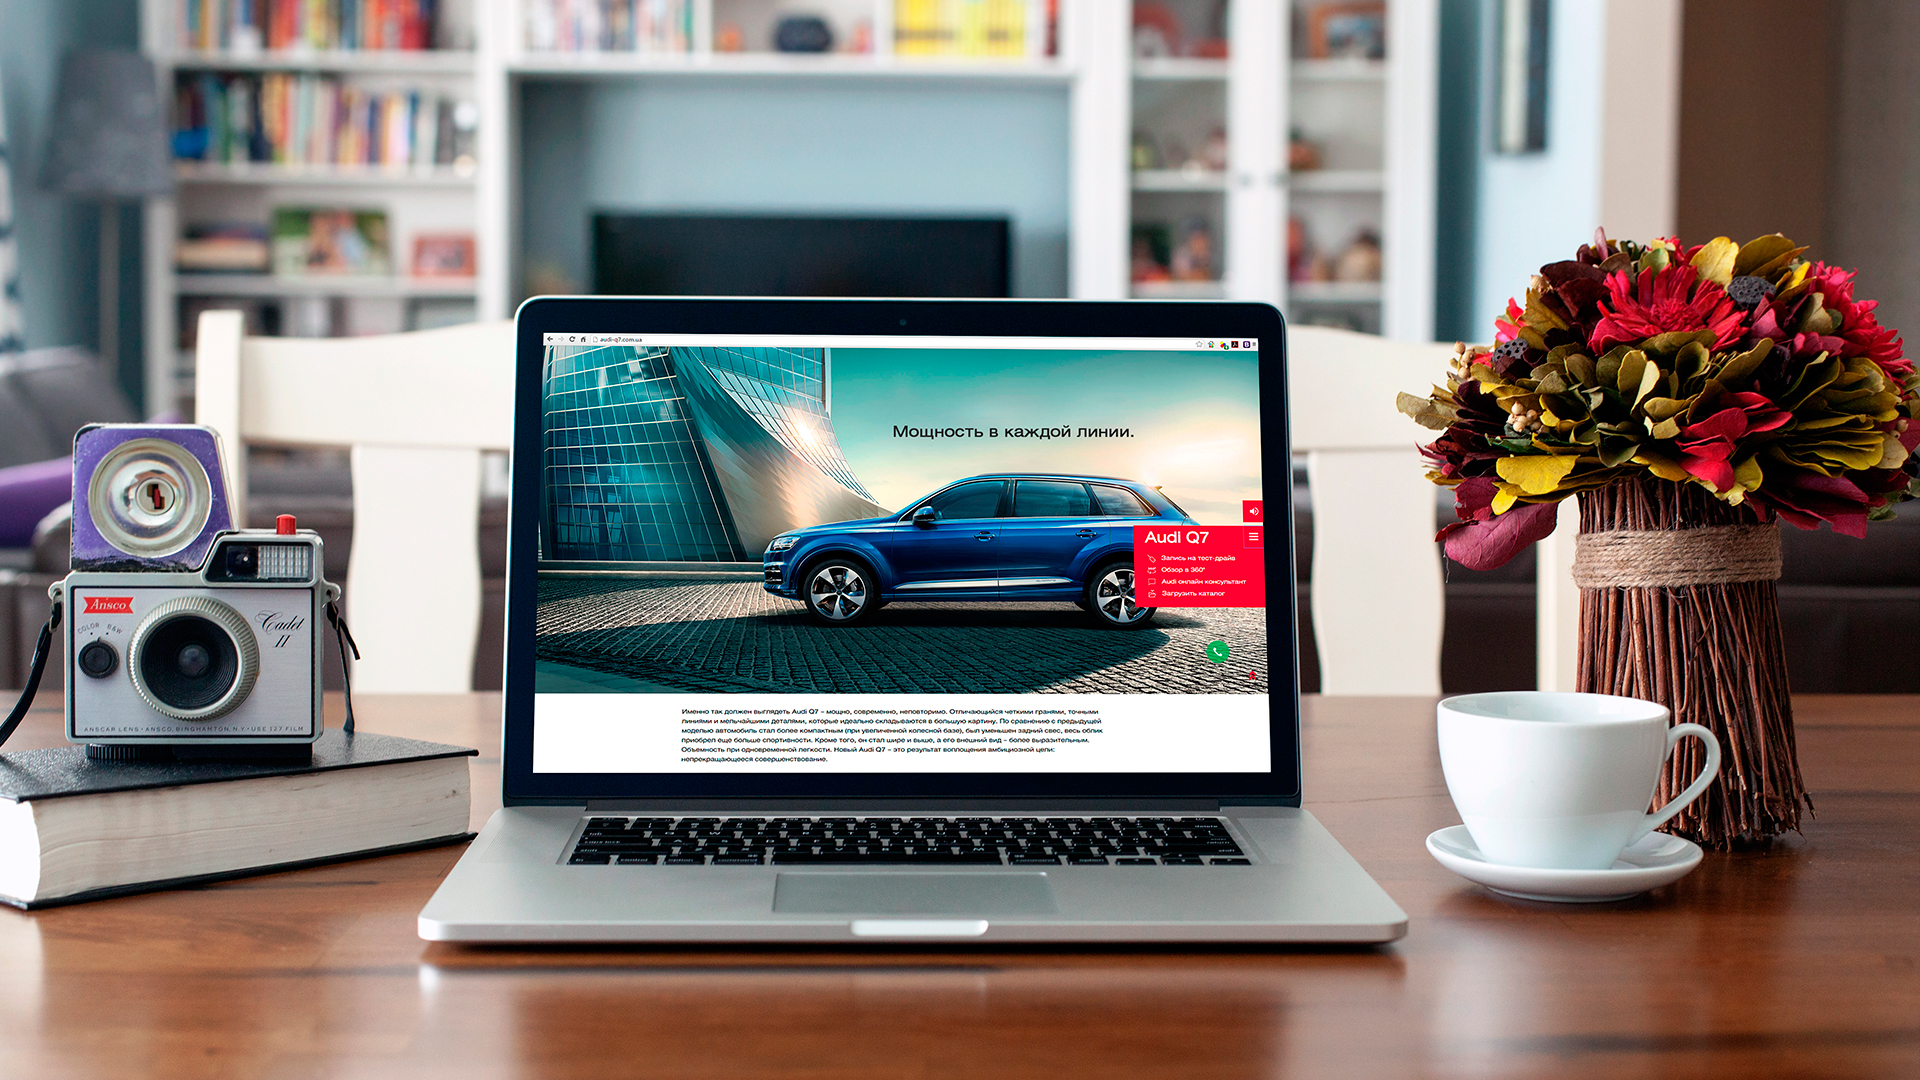 Strategies to promote the Audi Q7 technology website